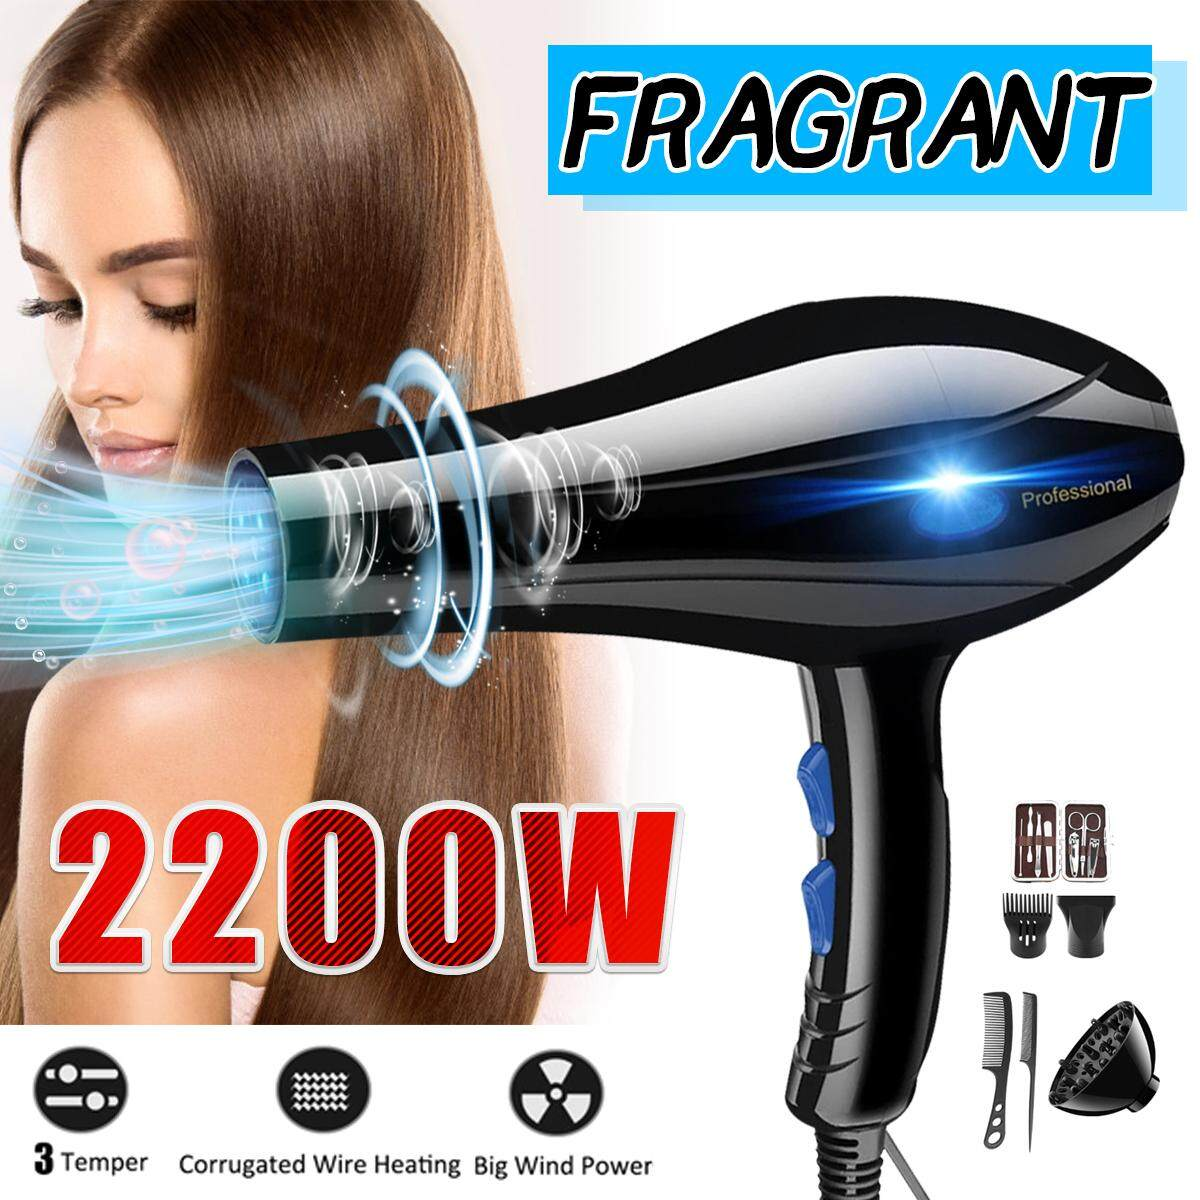 220V 2200W Blue Light Aromatherapy Hair-Care Cold / Hot Hair Blow Dryer